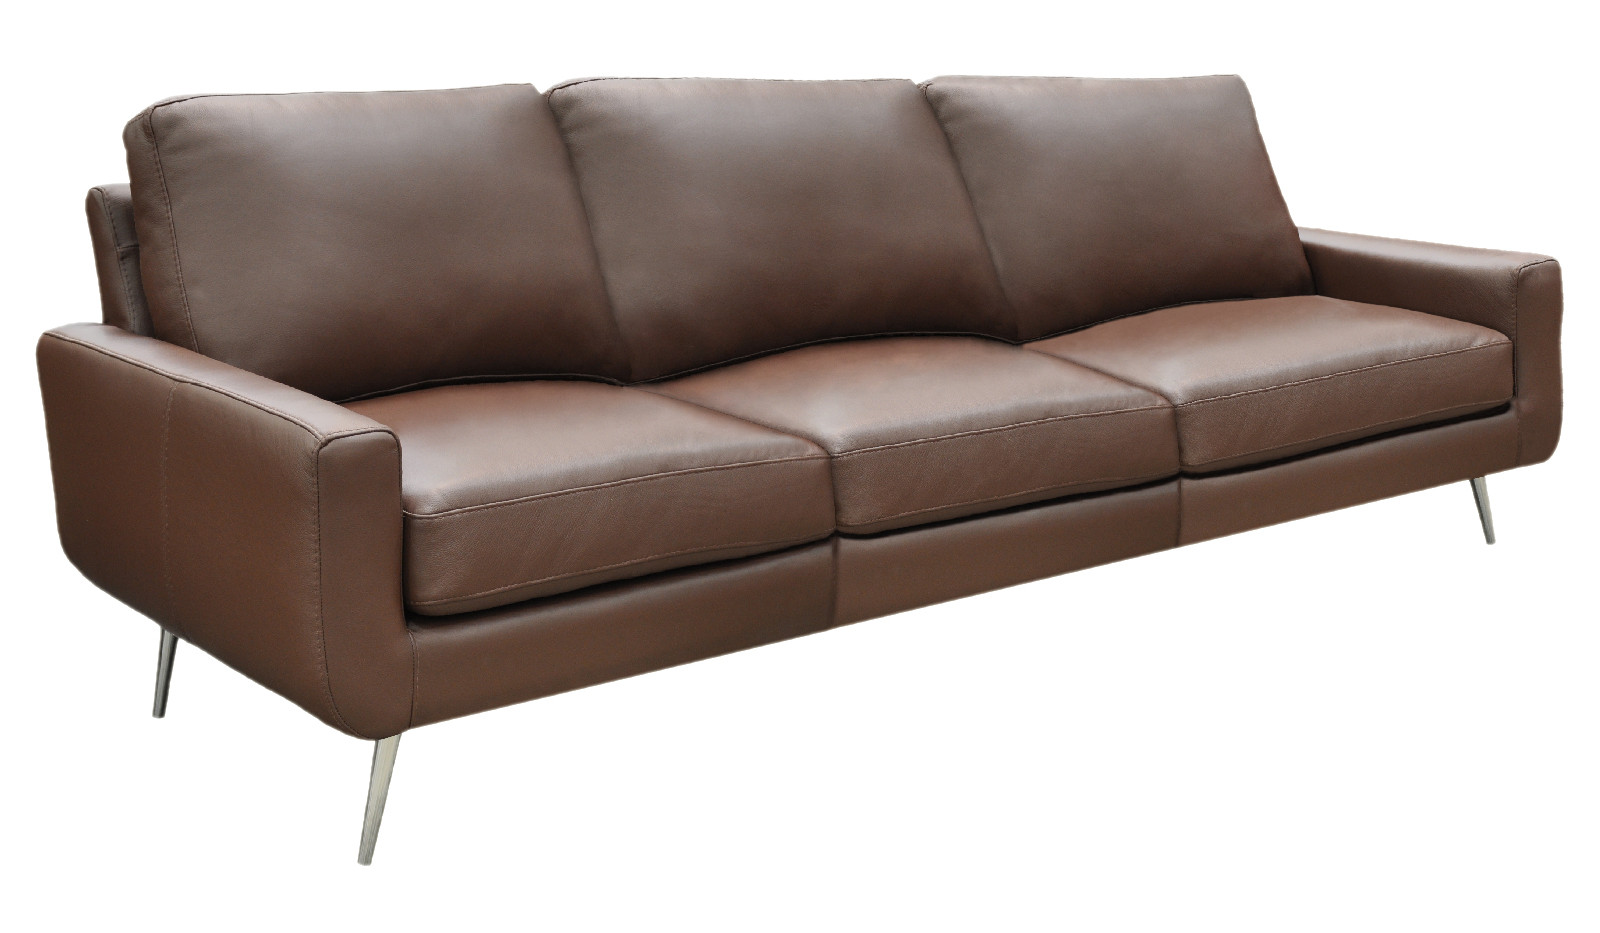 Harvey-Sofa-Softsations-Mocha-Angled-SL-